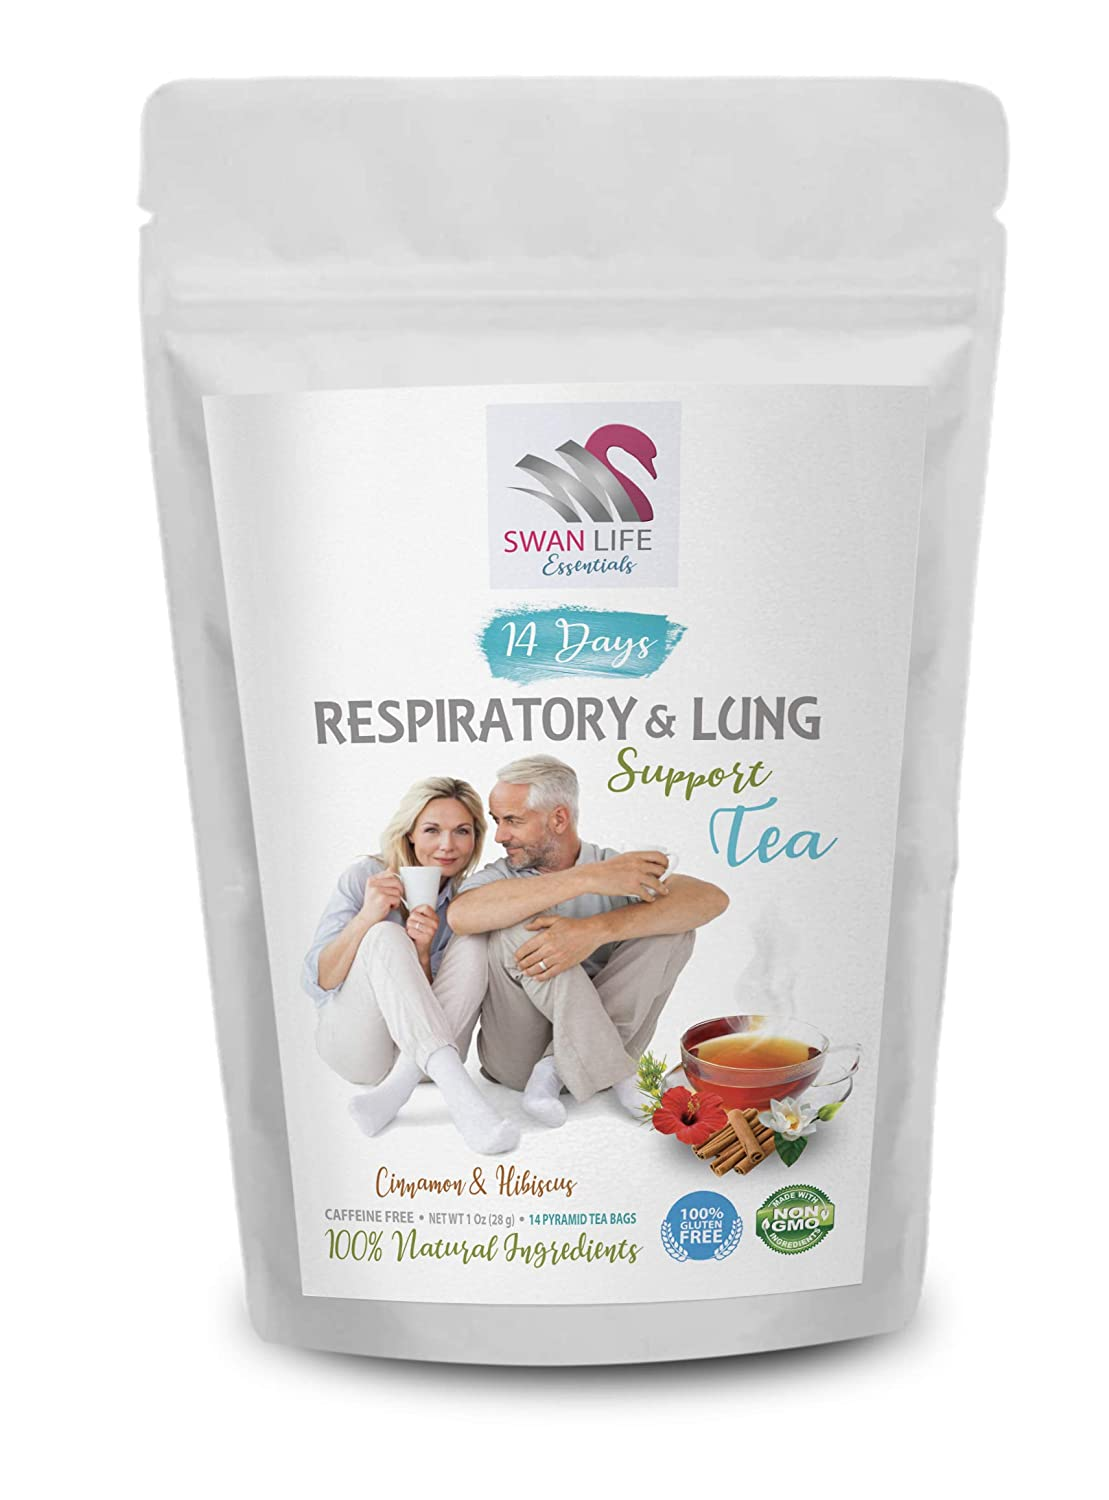 tea for respiratory health – caffeine free - RESPIRATORY & LUNG SUPPORT TEA by SWAN LIFE ESSENTIALS – 14 Days respiratory balance tea - Cinnamon & Hibiscus Natural Flavor